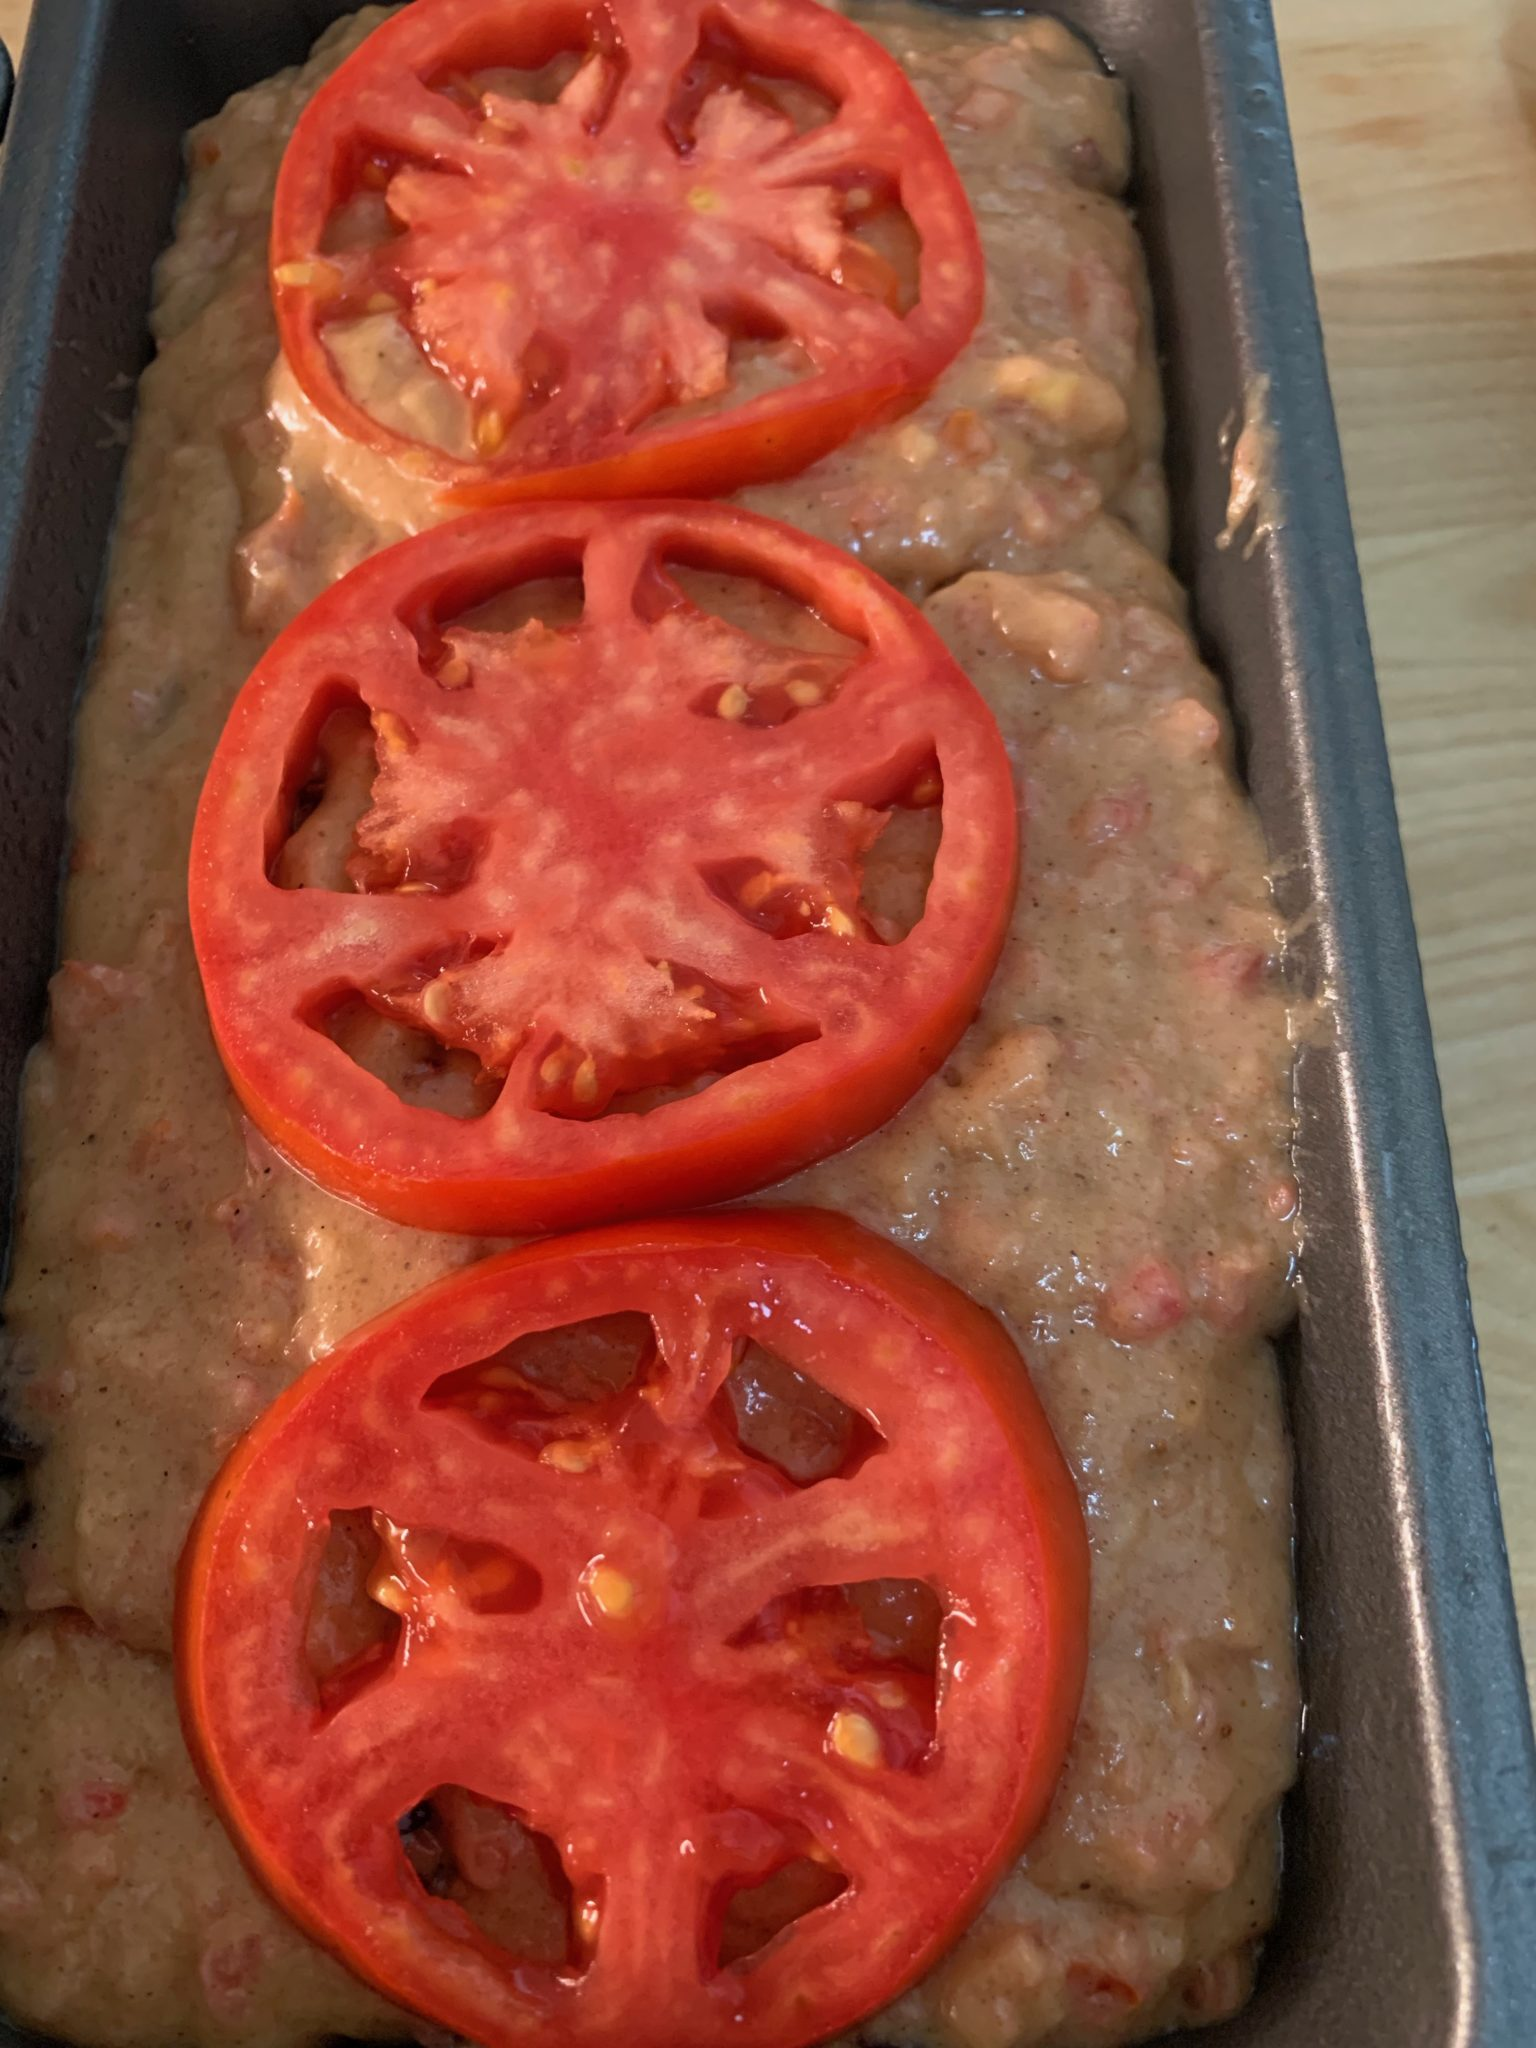 Tomato bread batter topped with sliced tomatoes